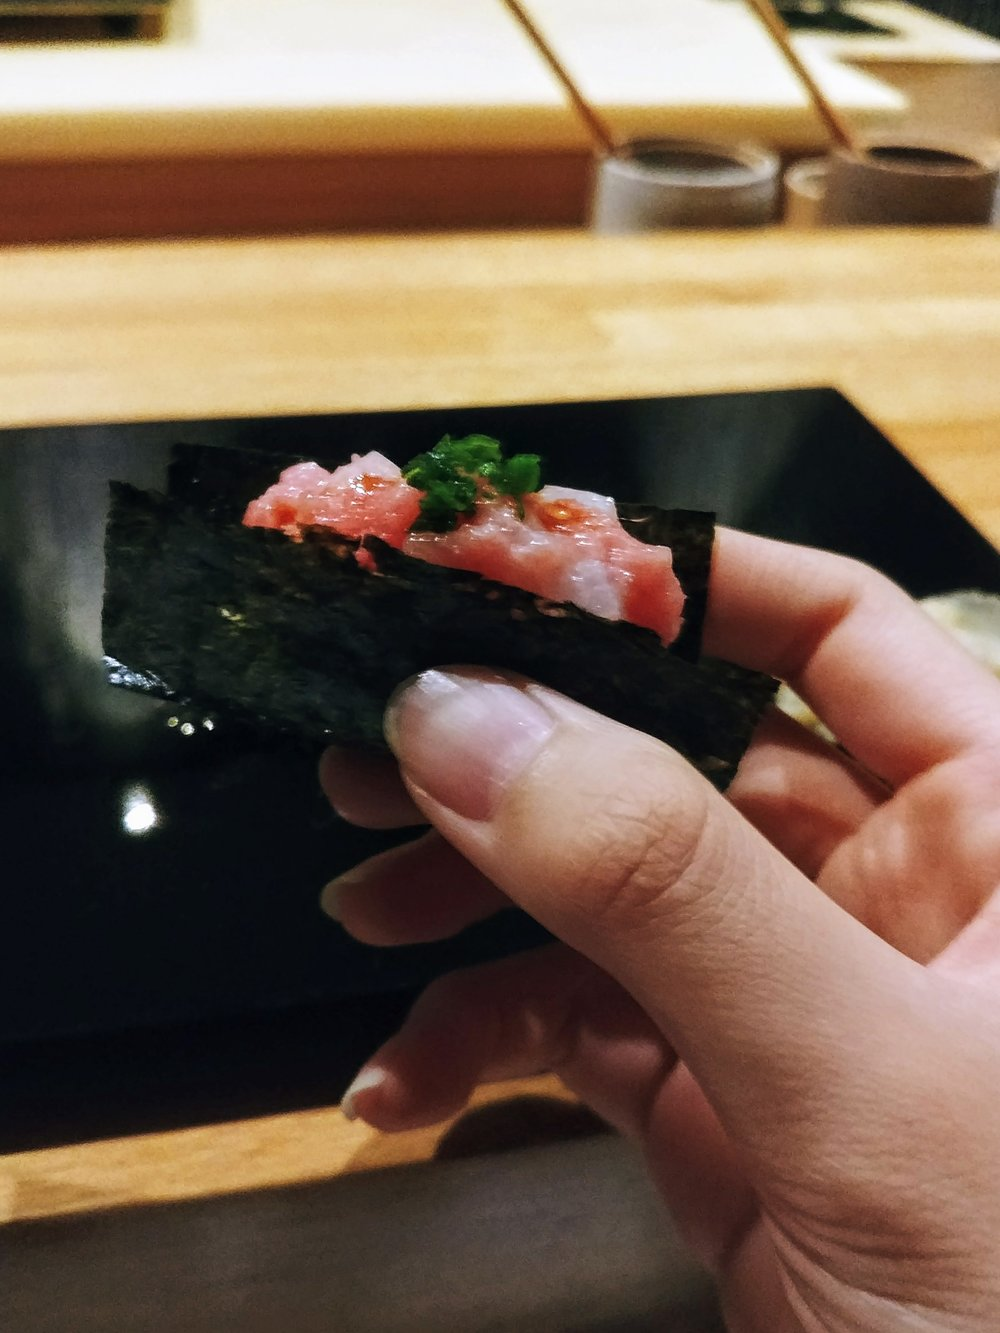 Chopped bluefin tuna - The crunchy-ness of the seaweed really highlights the creamy-ness of the tuna, like the fish dissolving once it hits into your mouth.